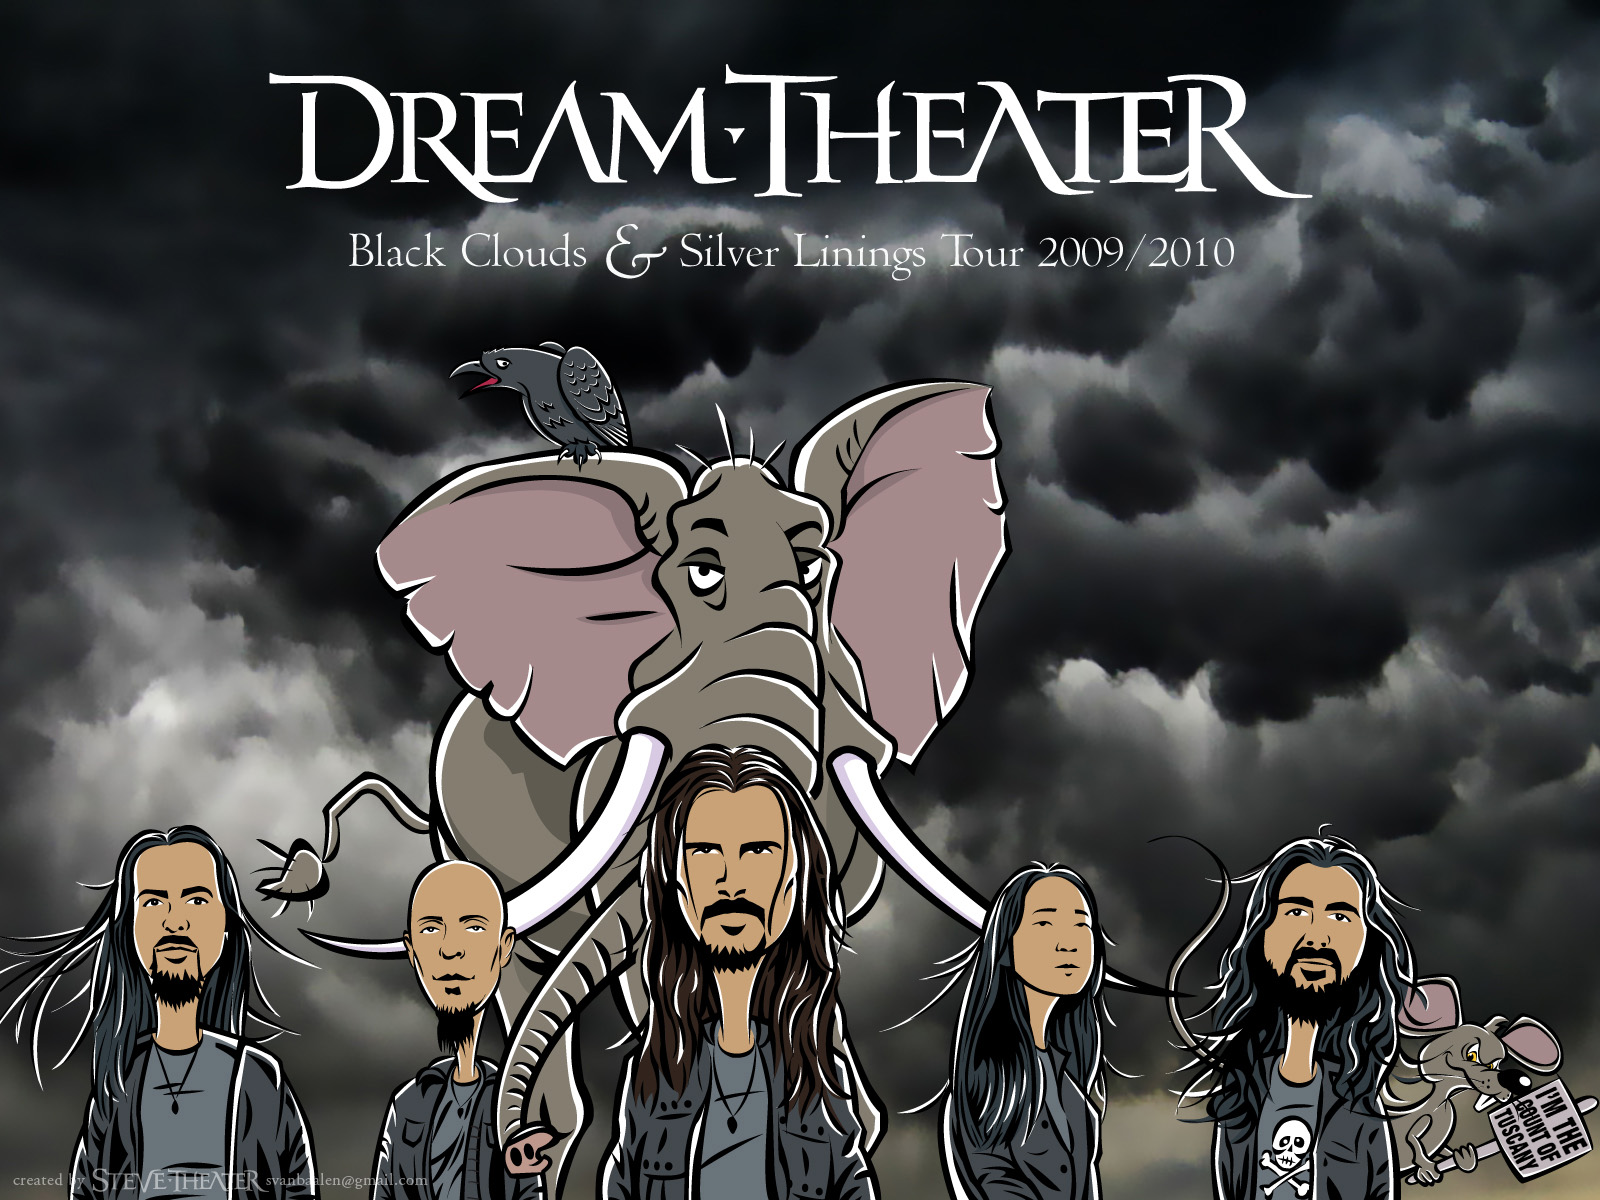 Dream Theater Computer Wallpapers Desktop Backgrounds 1600x1200 1600x1200